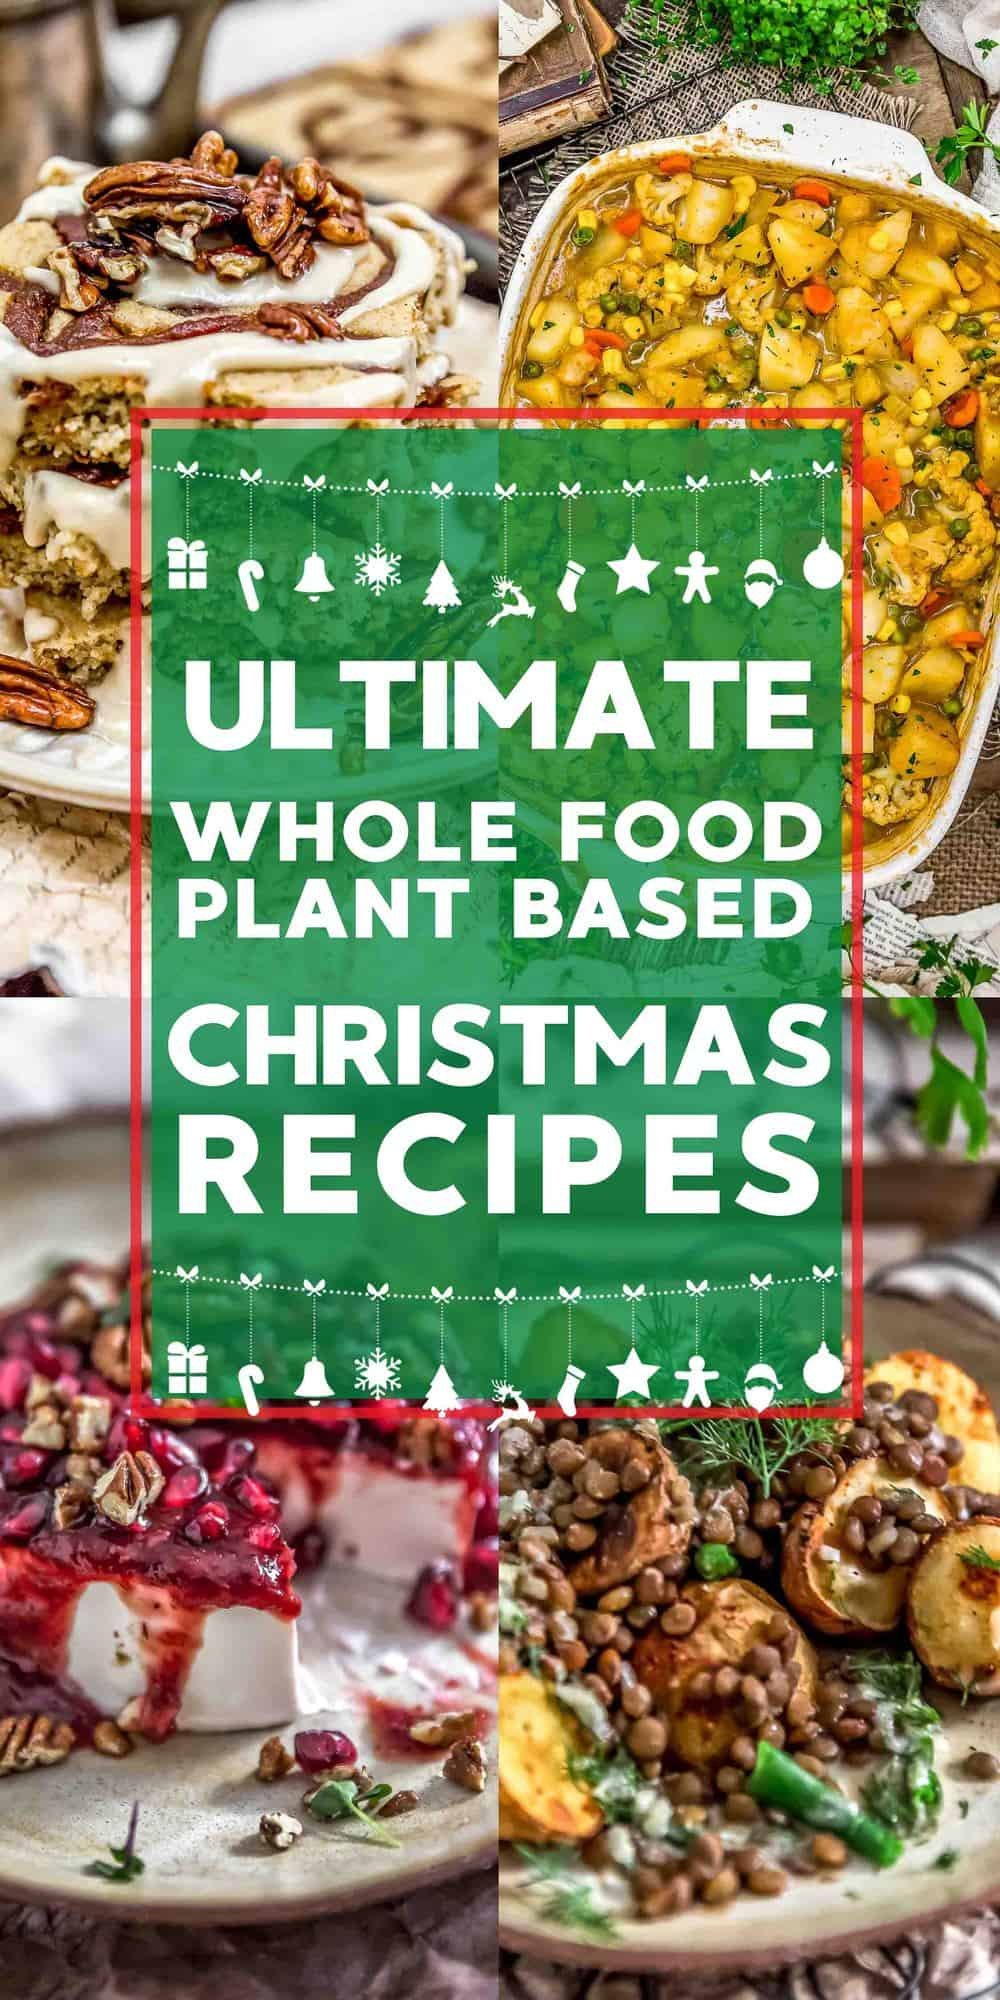 Whole Food Plant Based Christmas Recipes with text description